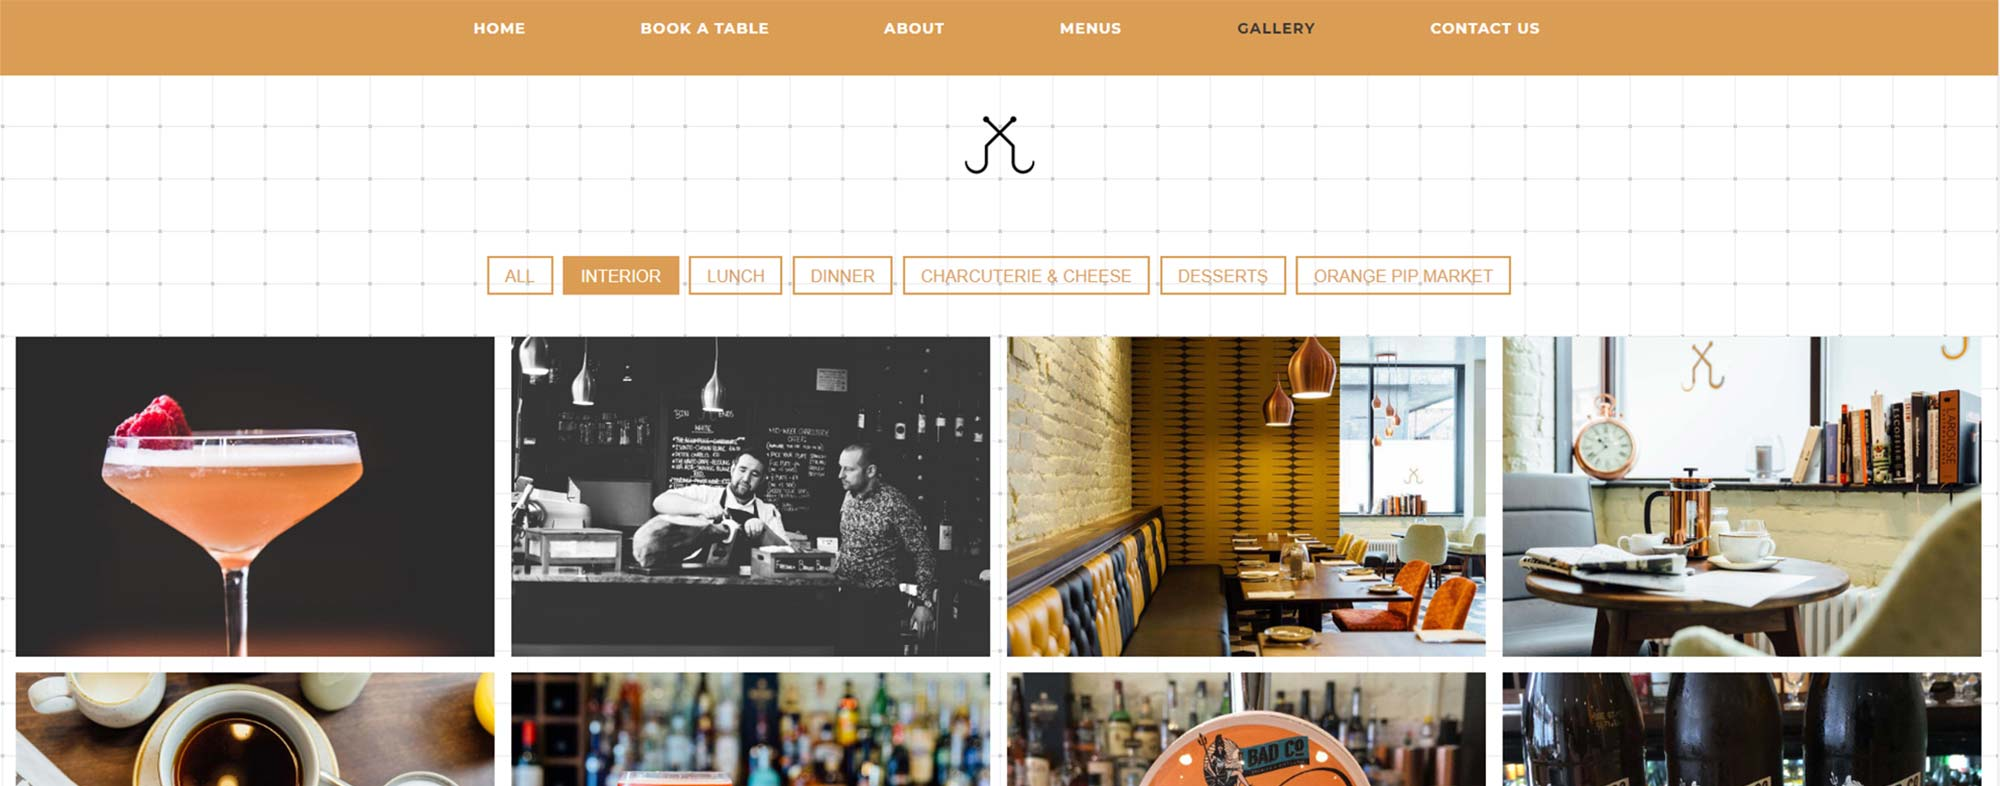 The Curing House Website Design